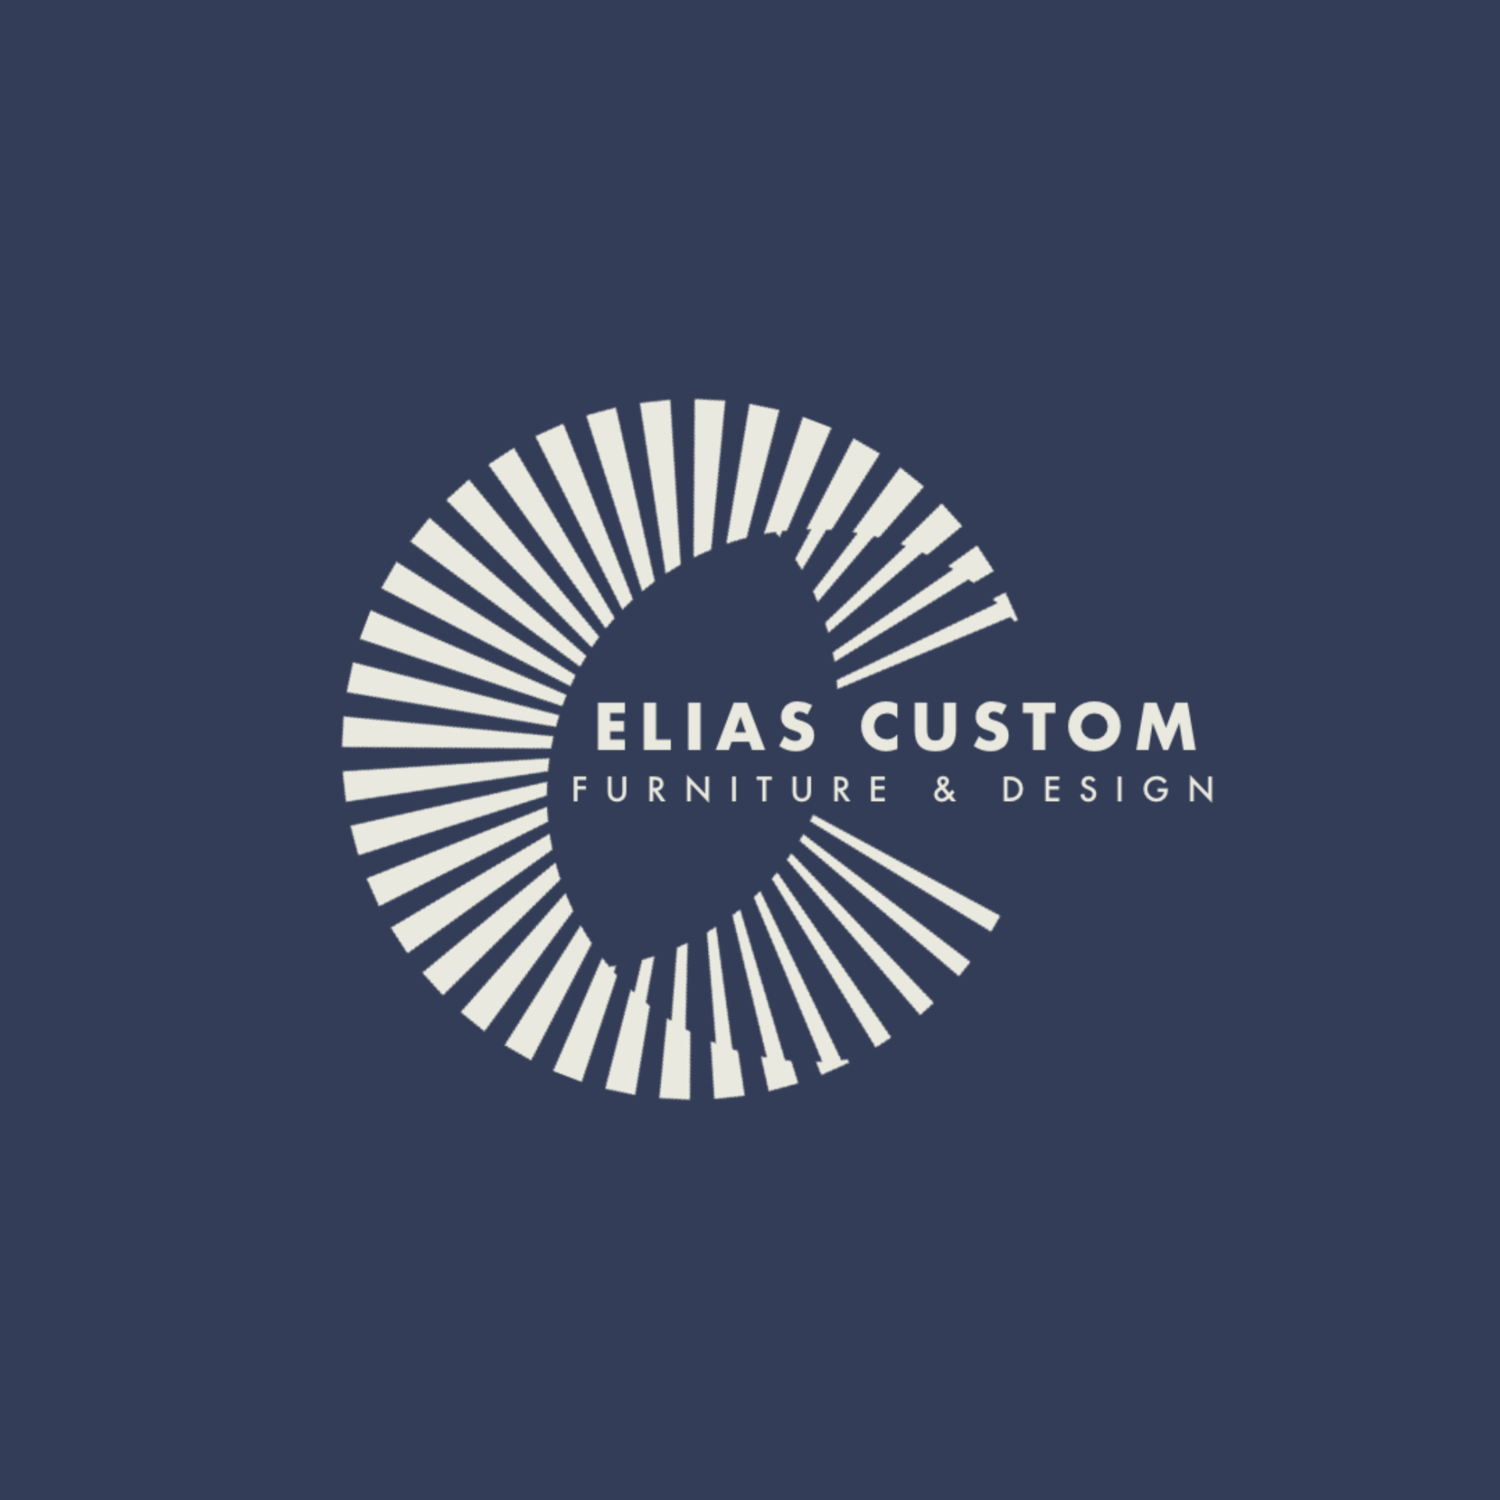 Elias Furniture